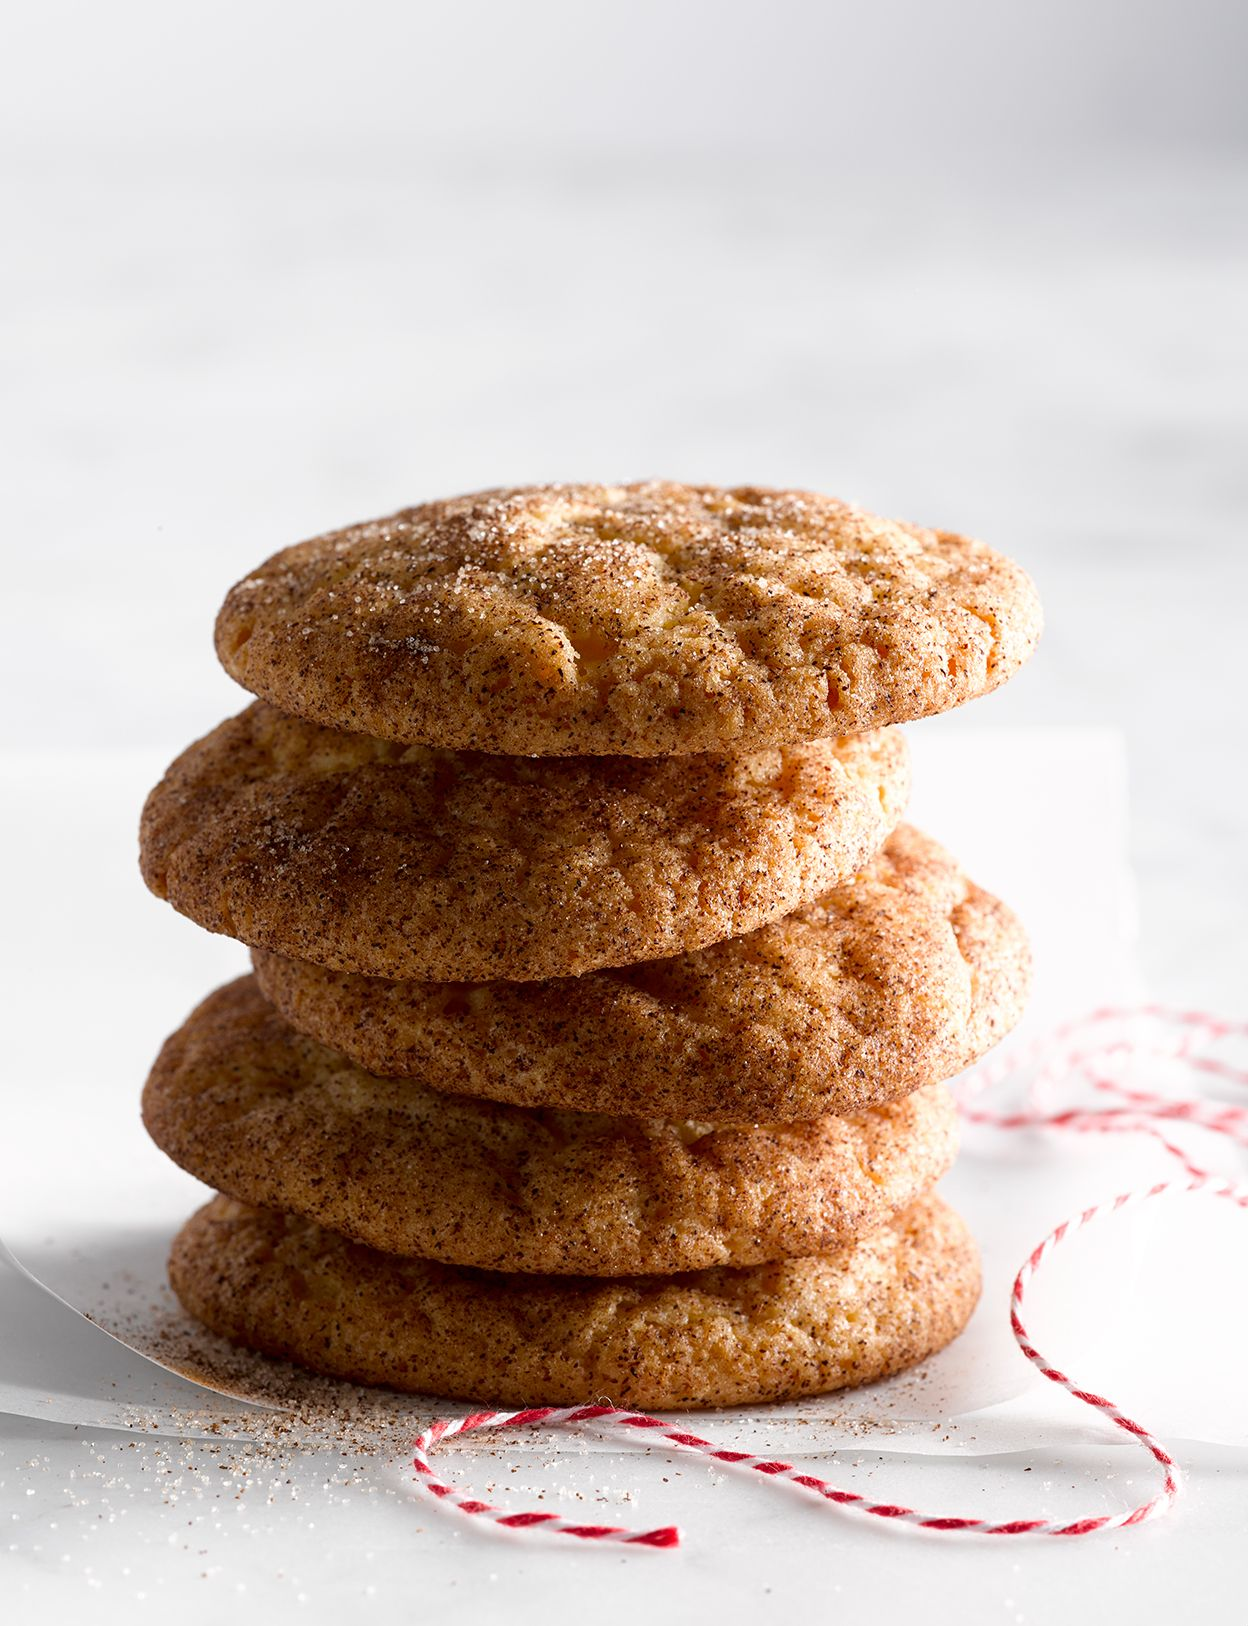 12 Days Of Cookies Joanne Chang S Snickerdoodles Holiday Cookies